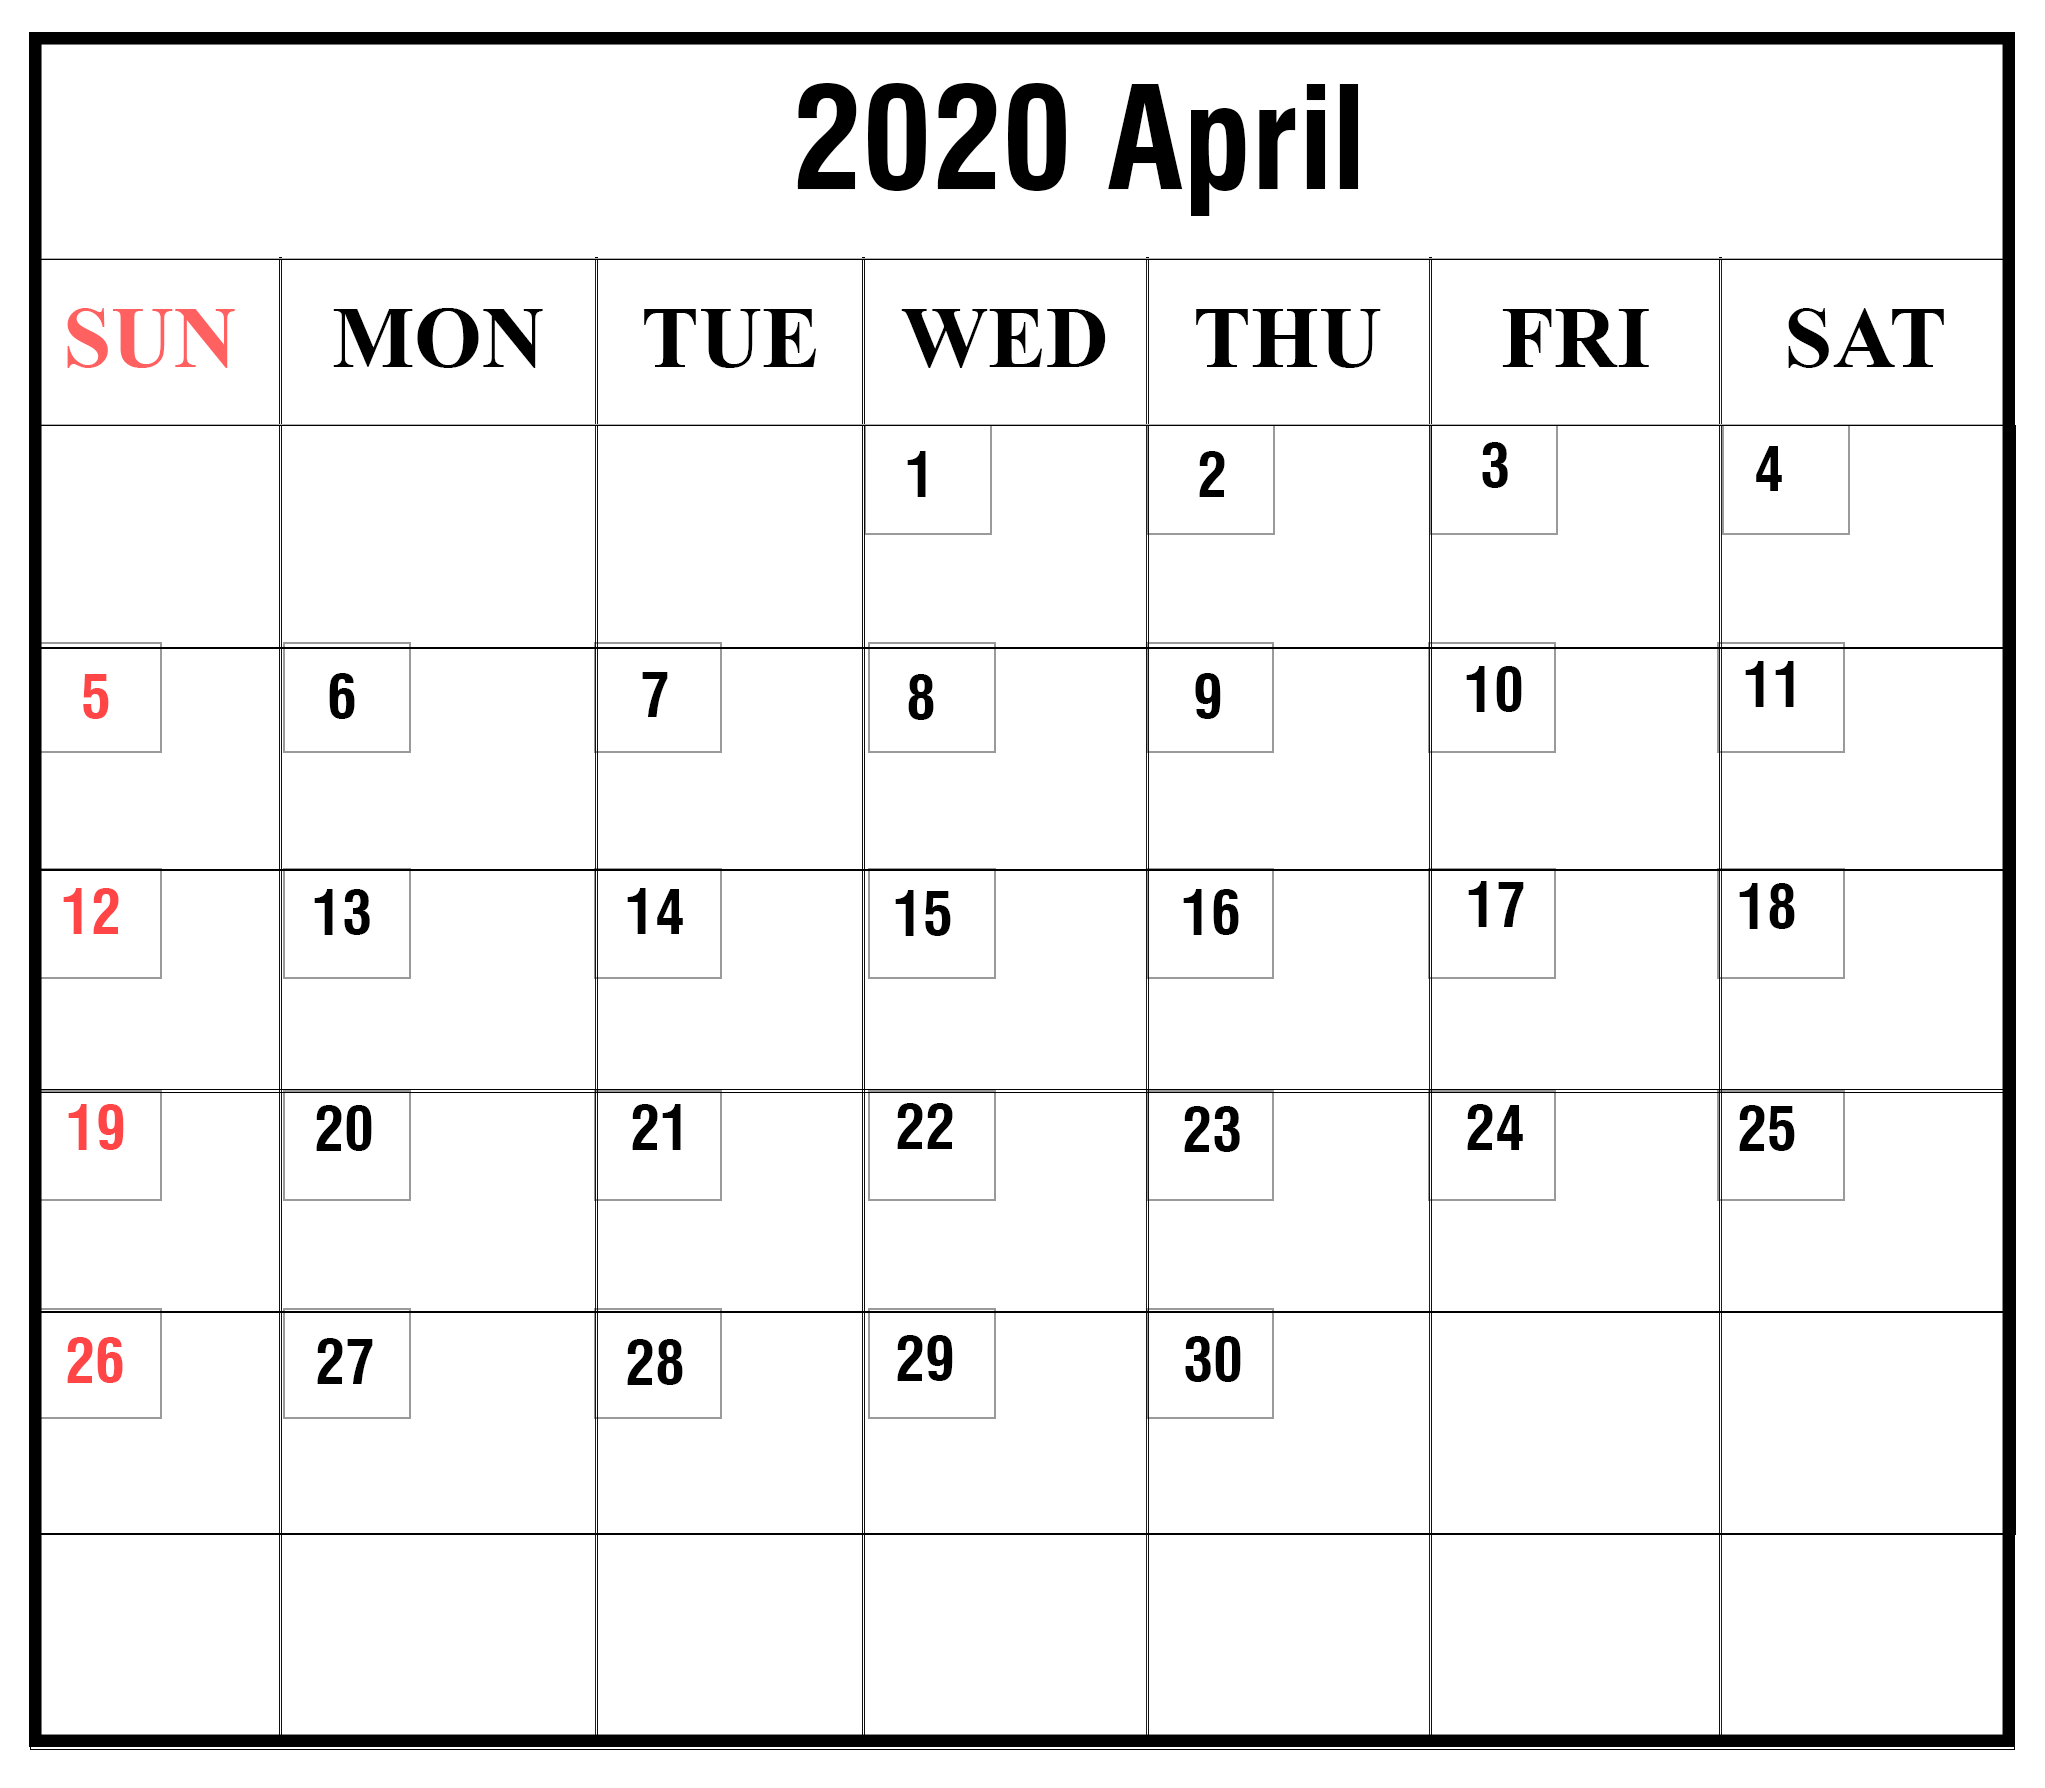 April 2020 Calendar With Holidays India